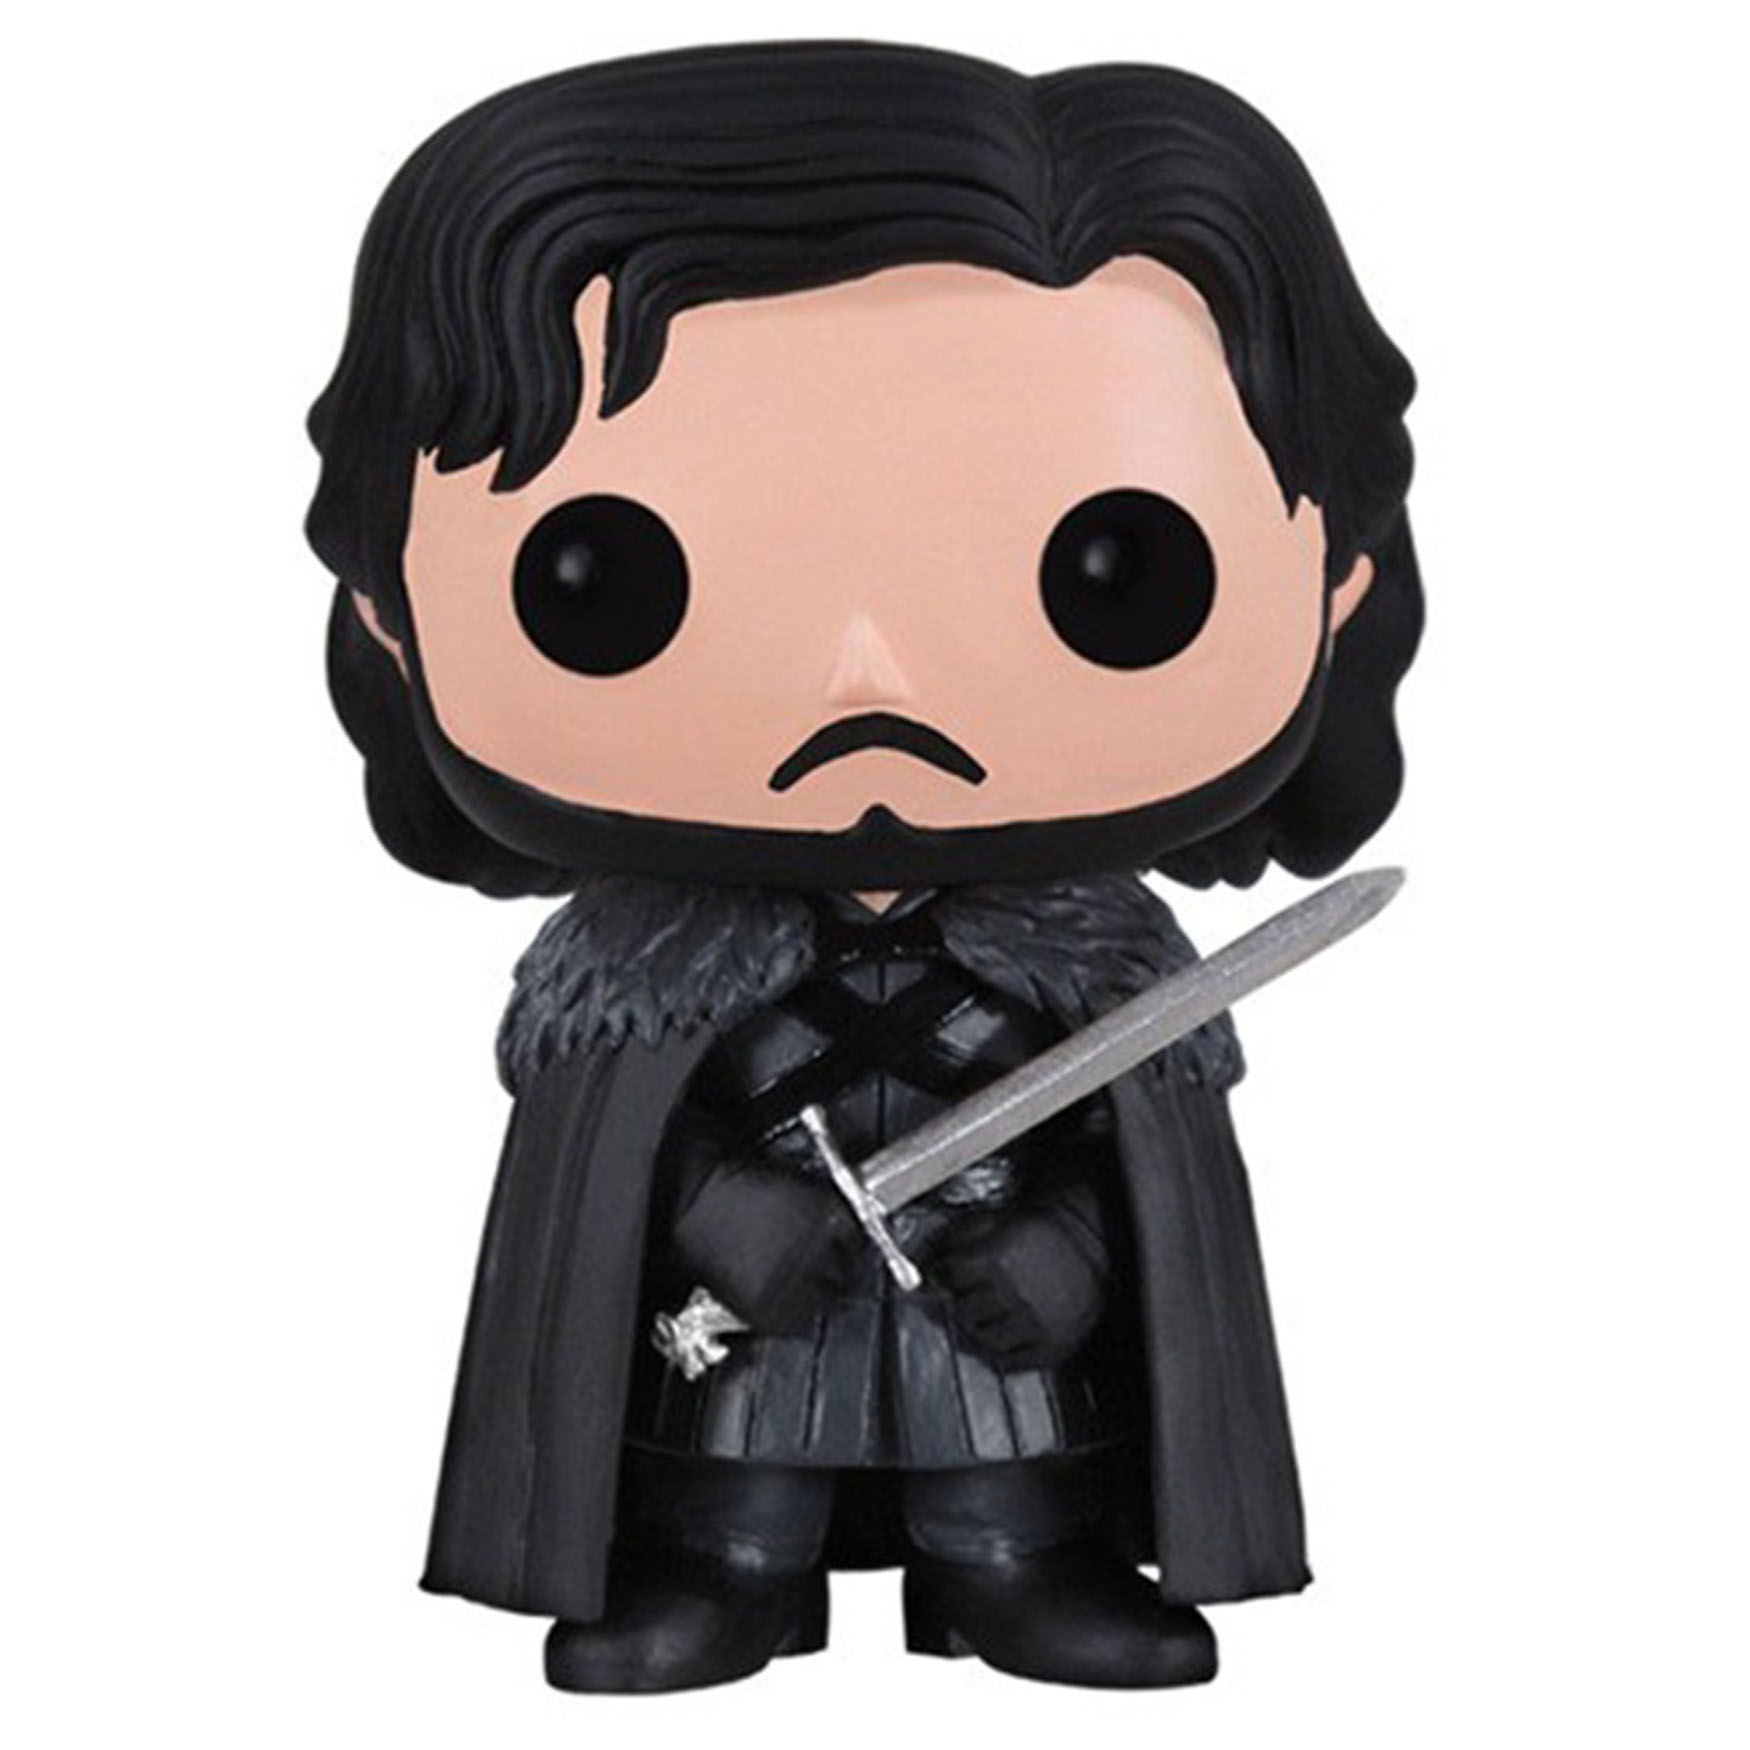 Funko Pop Jon Snow Game Of Thrones 07 Funko Box Loja